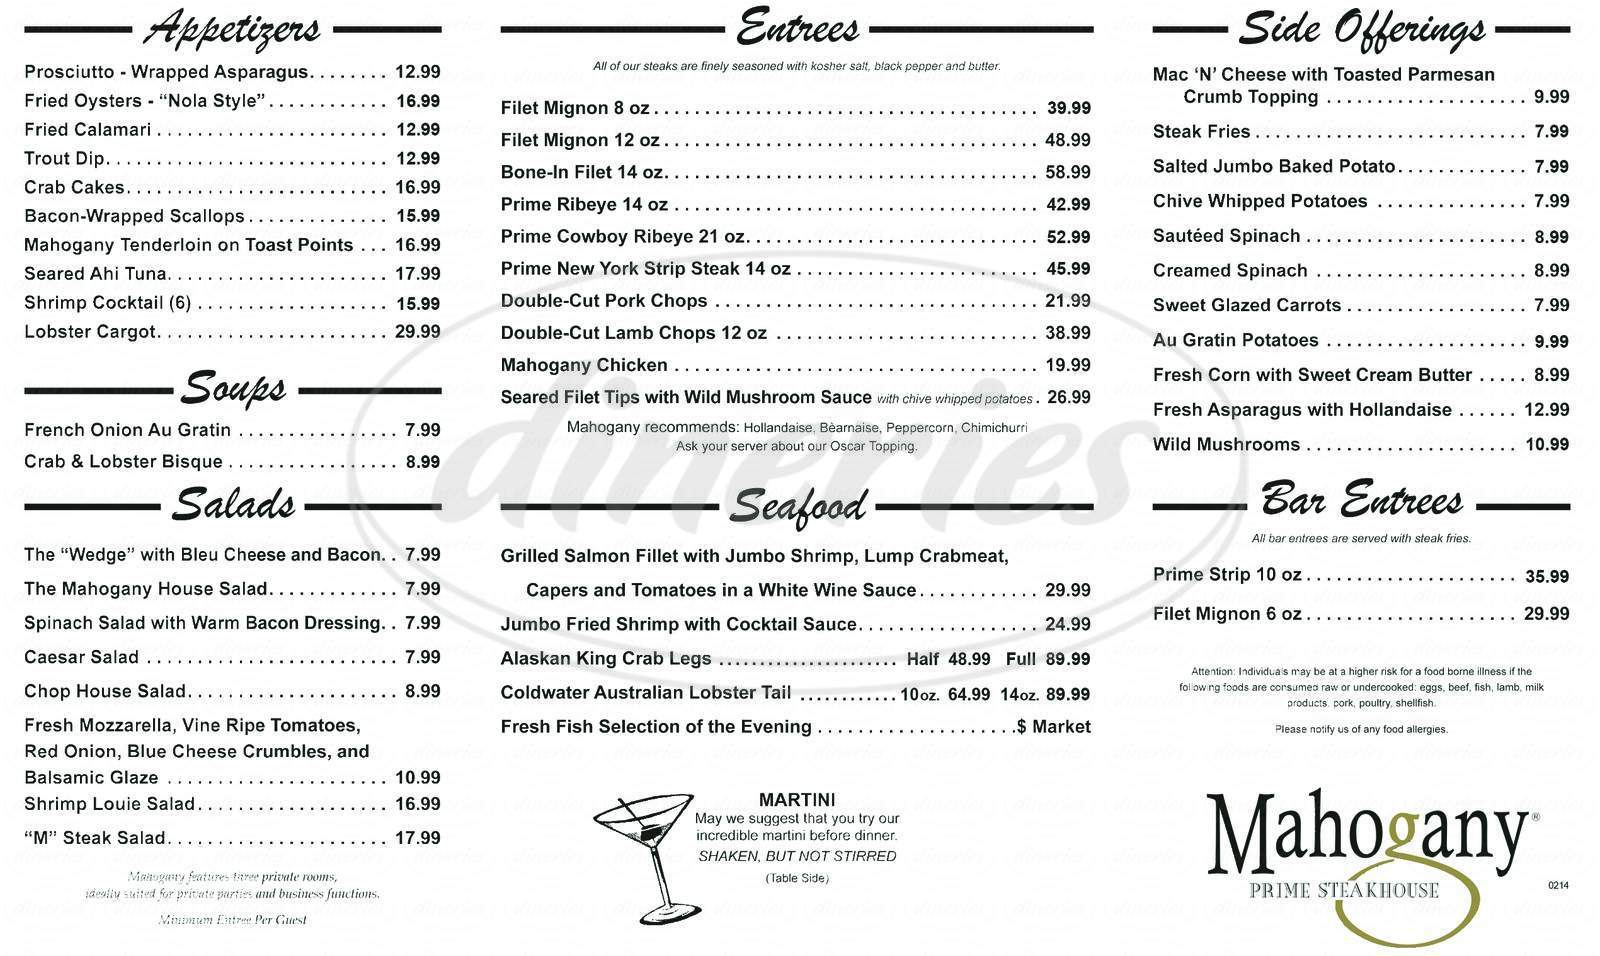 menu for Mahogany Prime Steakhouse